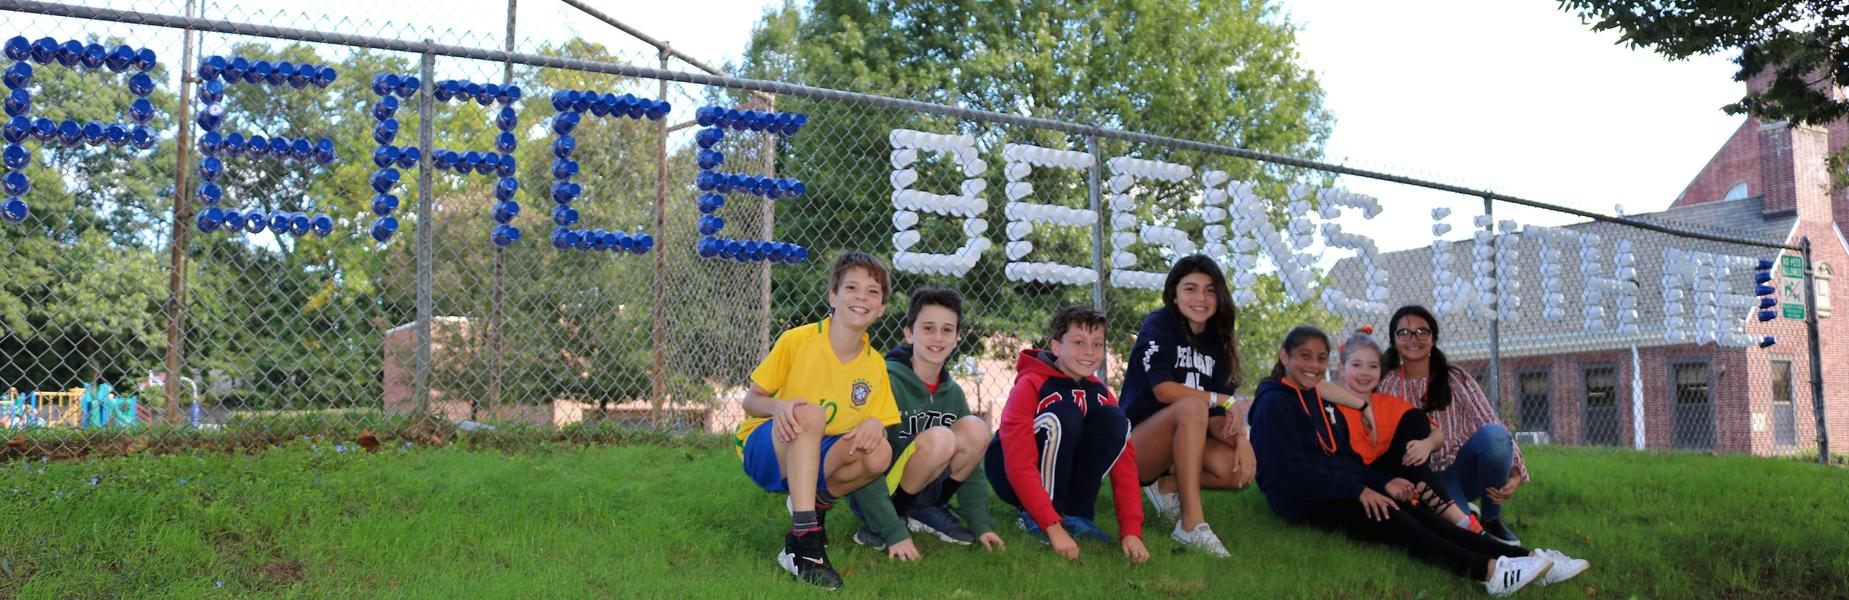 Franklin 5th graders pose in front of a sign in the fence created out of colorful plastic cups, saying